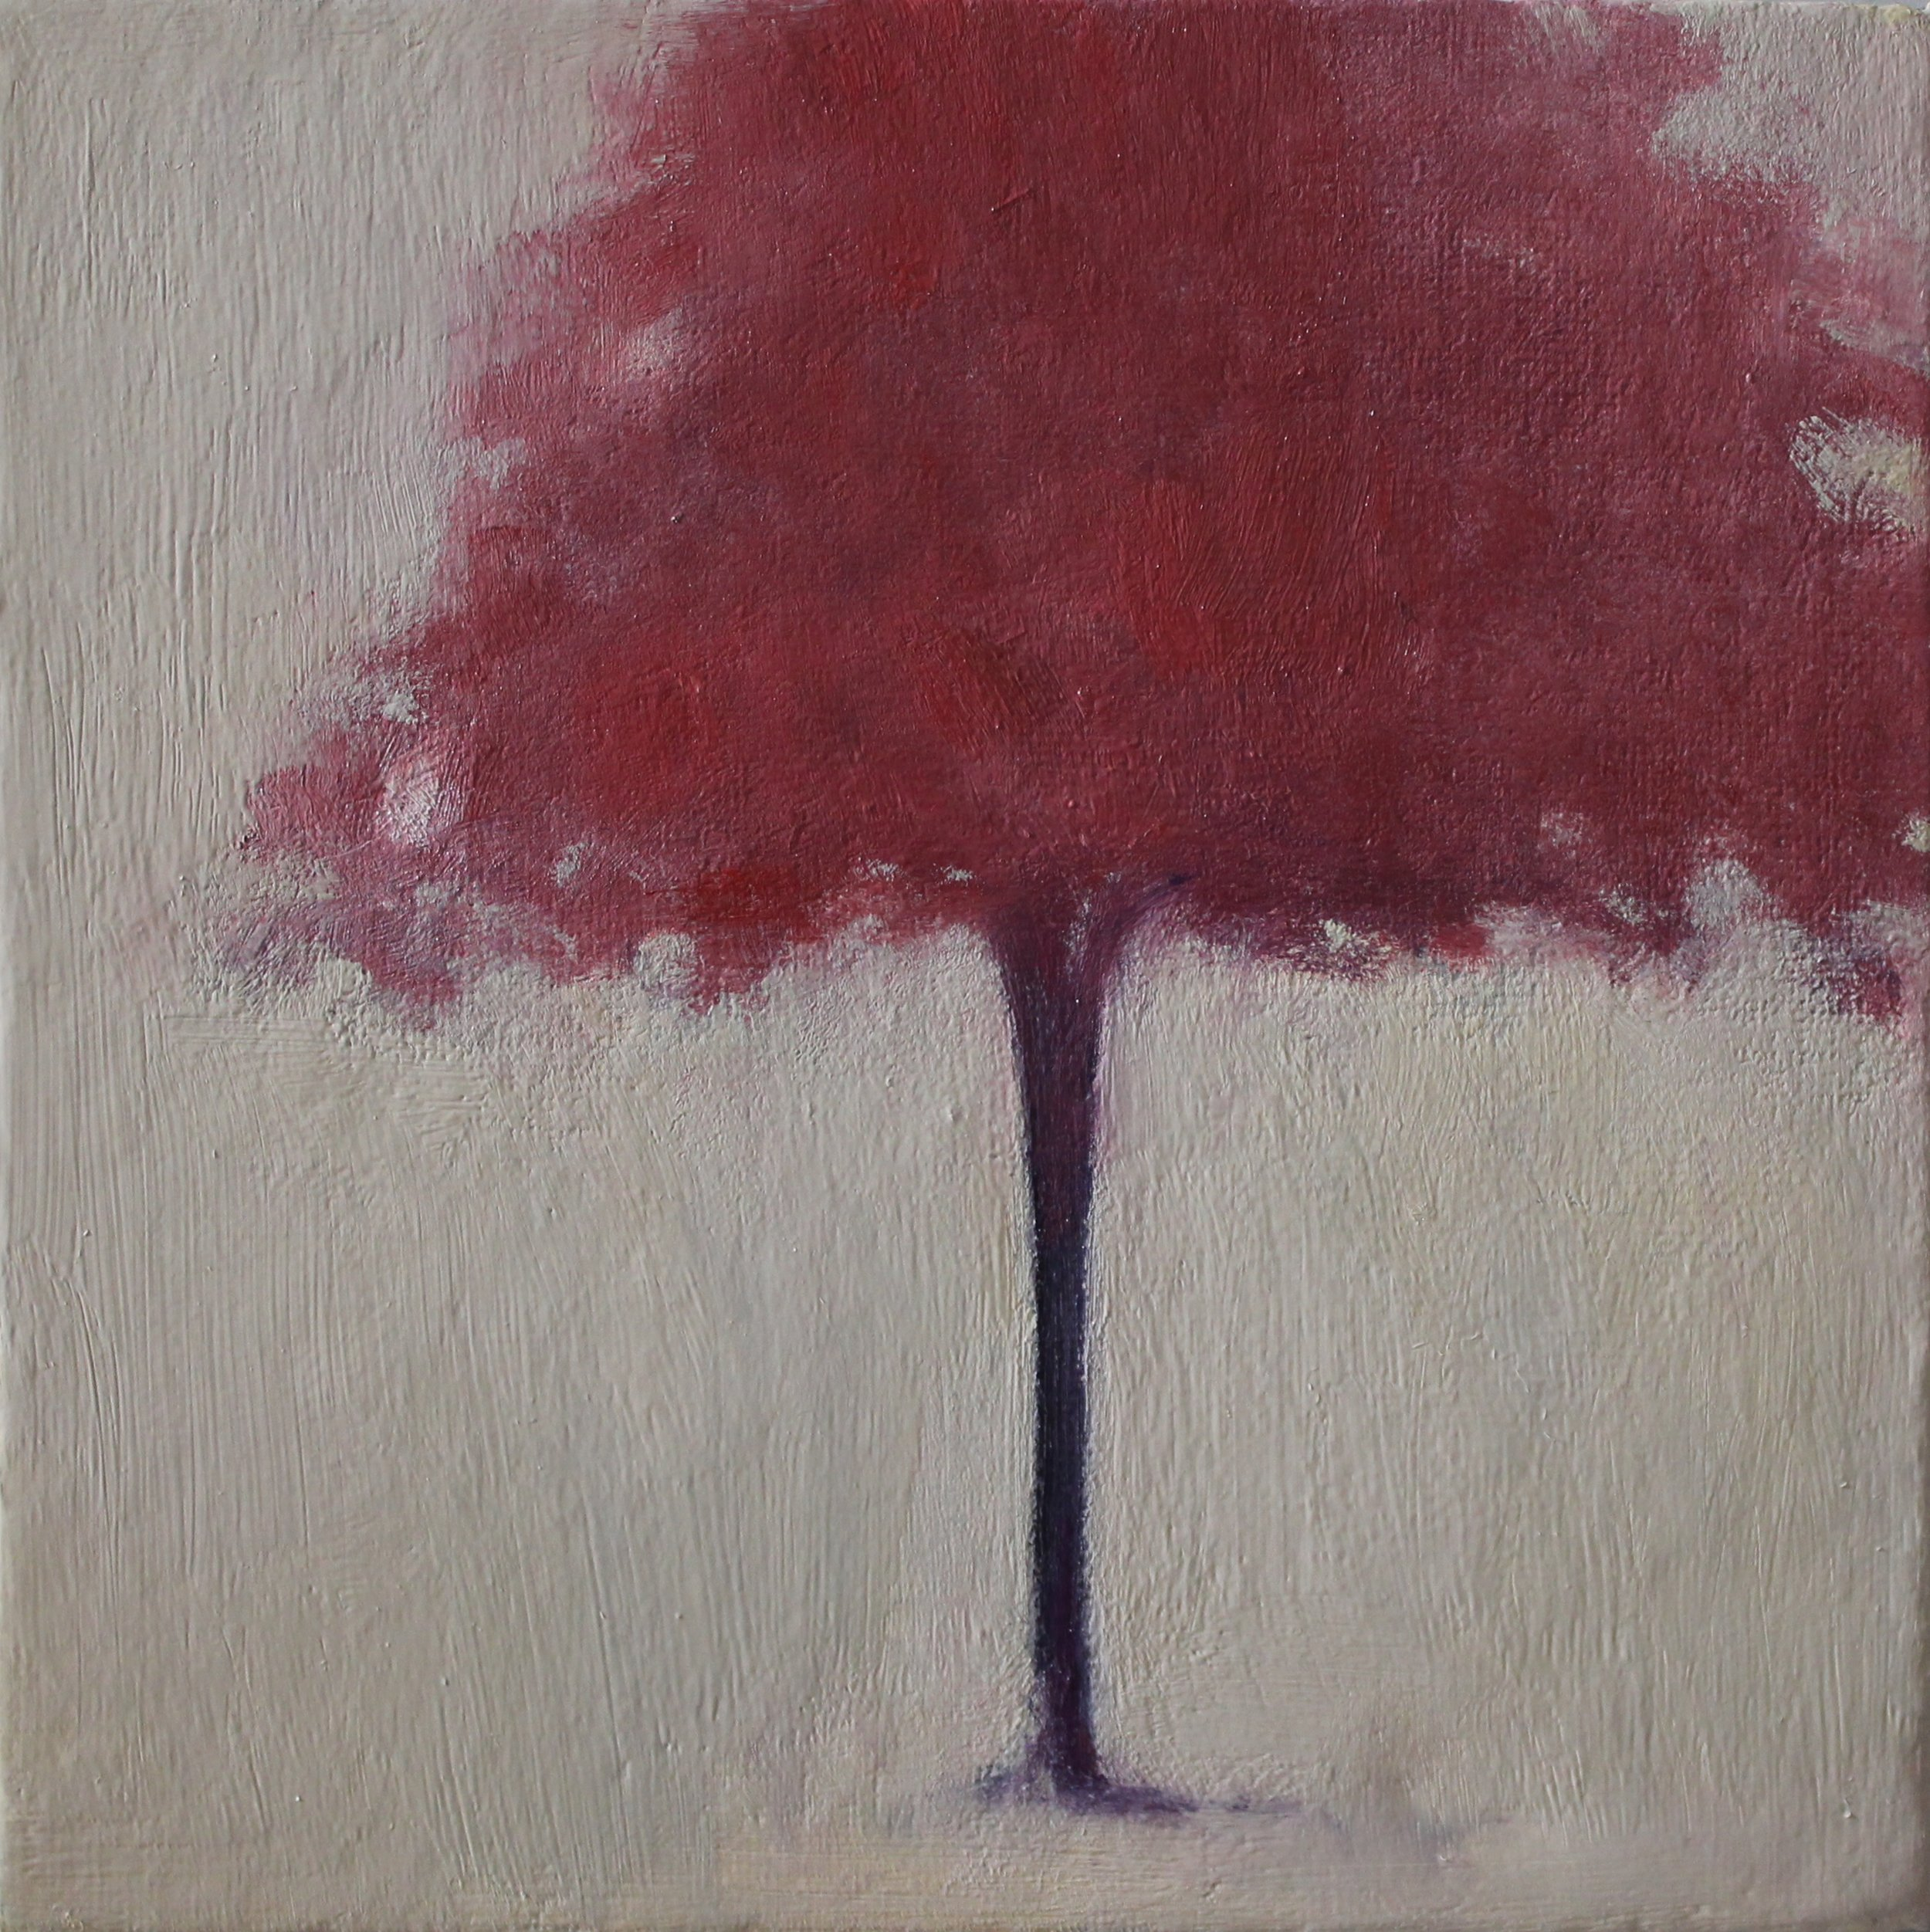 Title: Blossom Tree (I)  Size: 15 x 15 cm  Medium: Oil on canvas panel  Price: £260